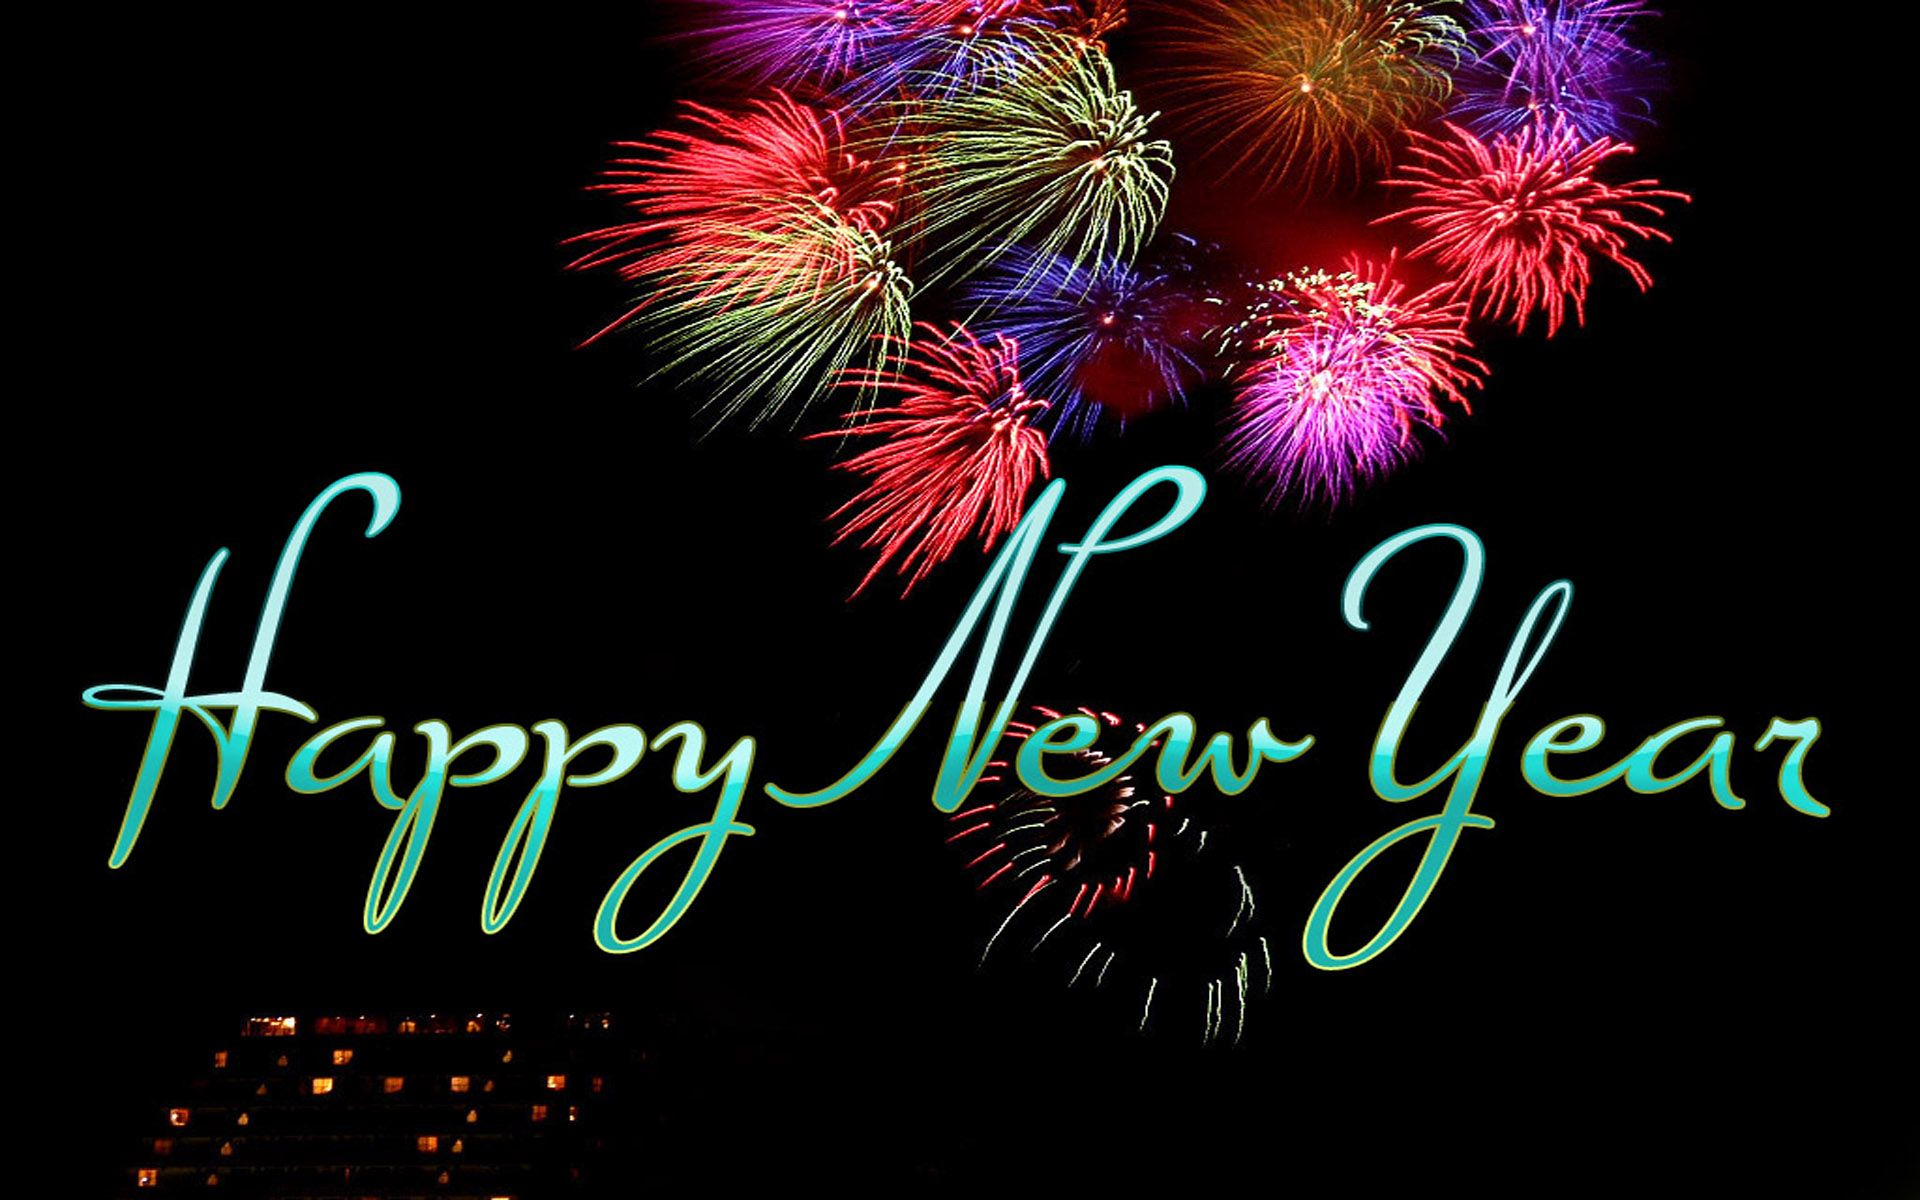 Free clipart happy new year in england clipart library download Happy New Year images Hd Wallpapers Pictures Photo Pics Free ... clipart library download